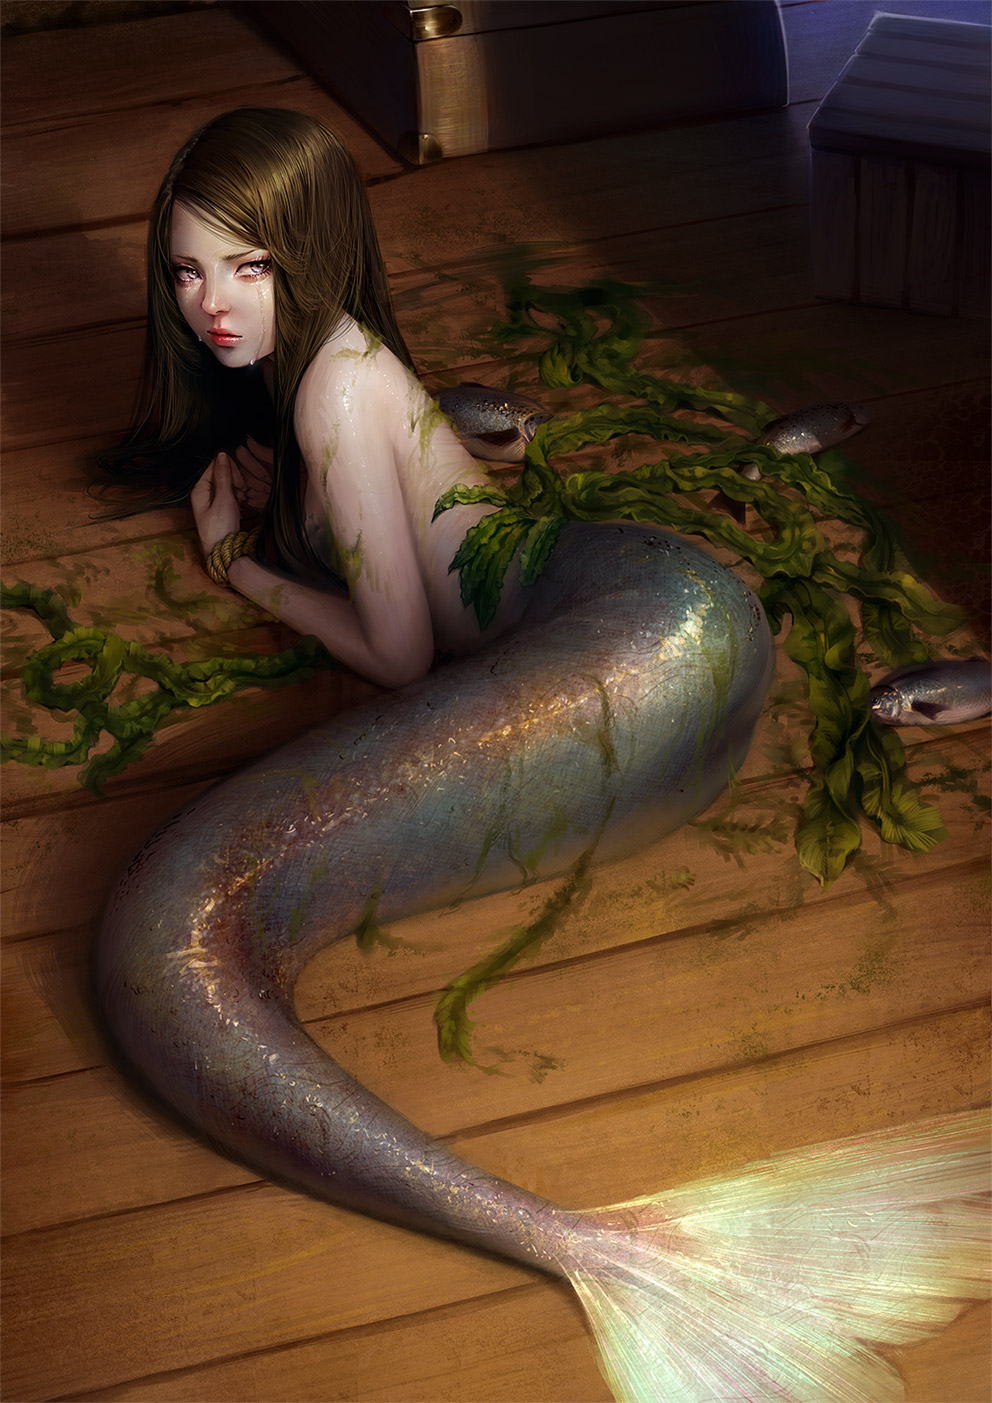 mermaid1